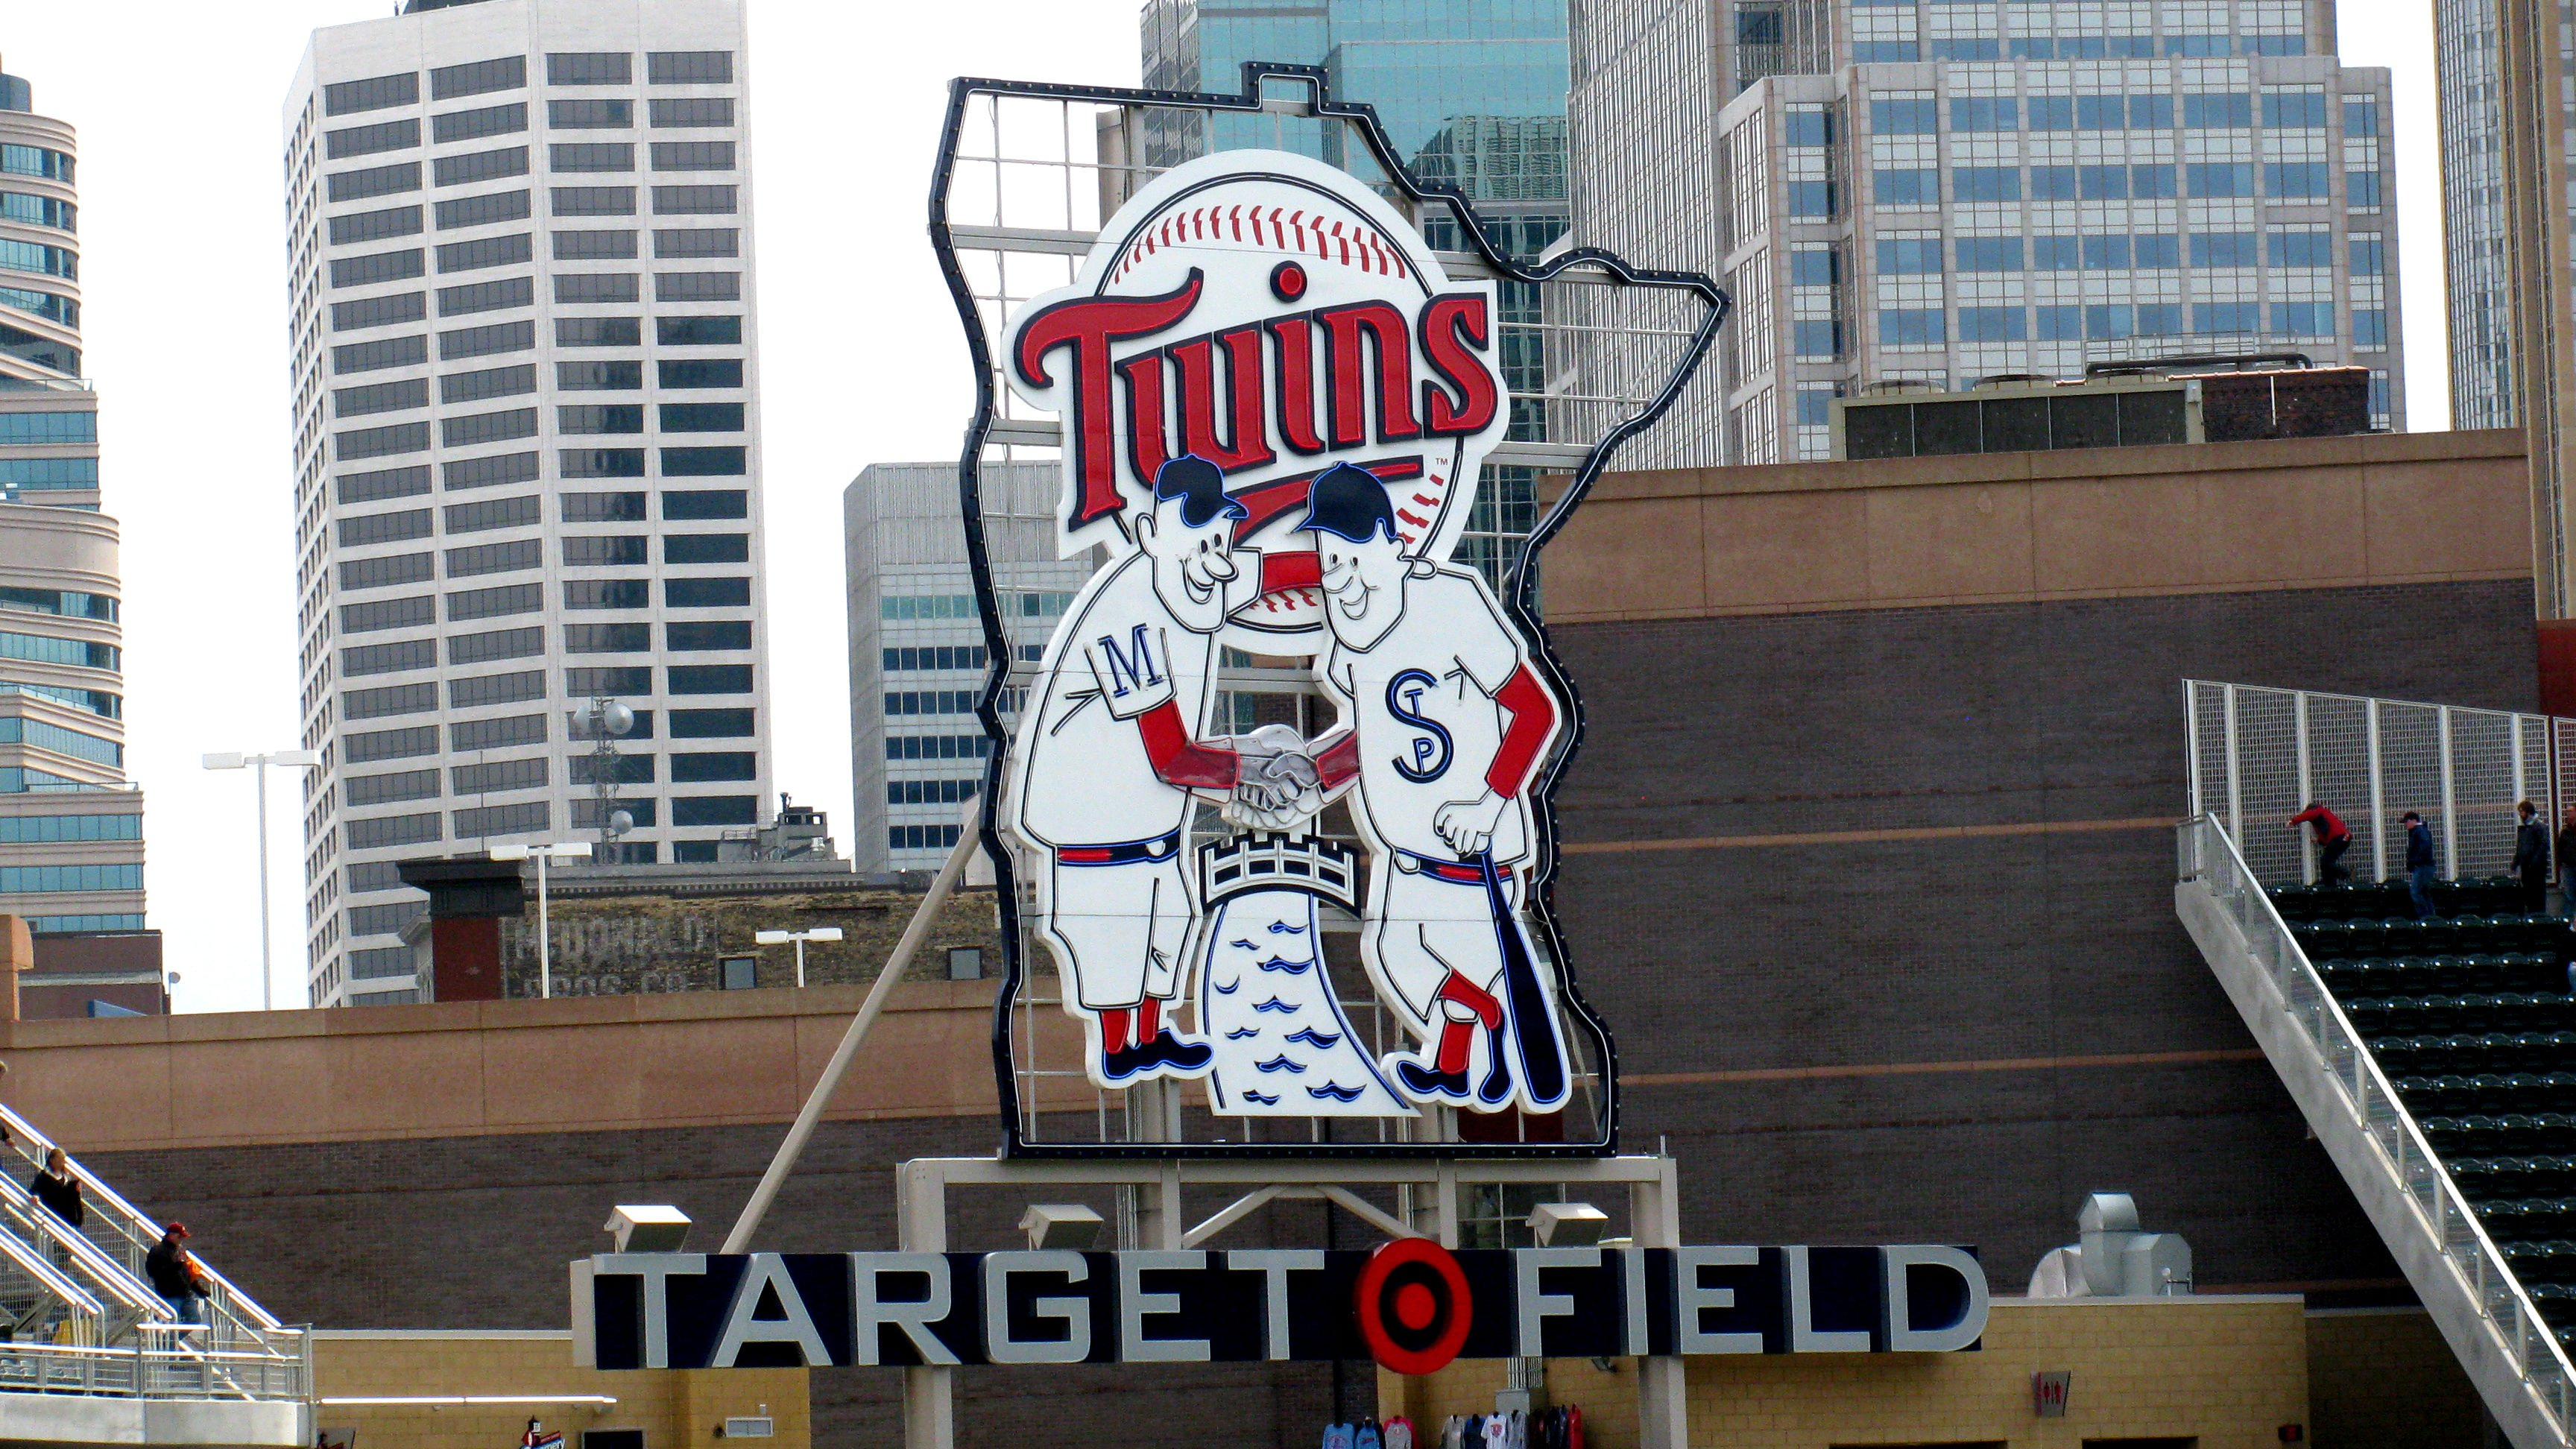 Twins Baseball Wallpaper images 3456x1944